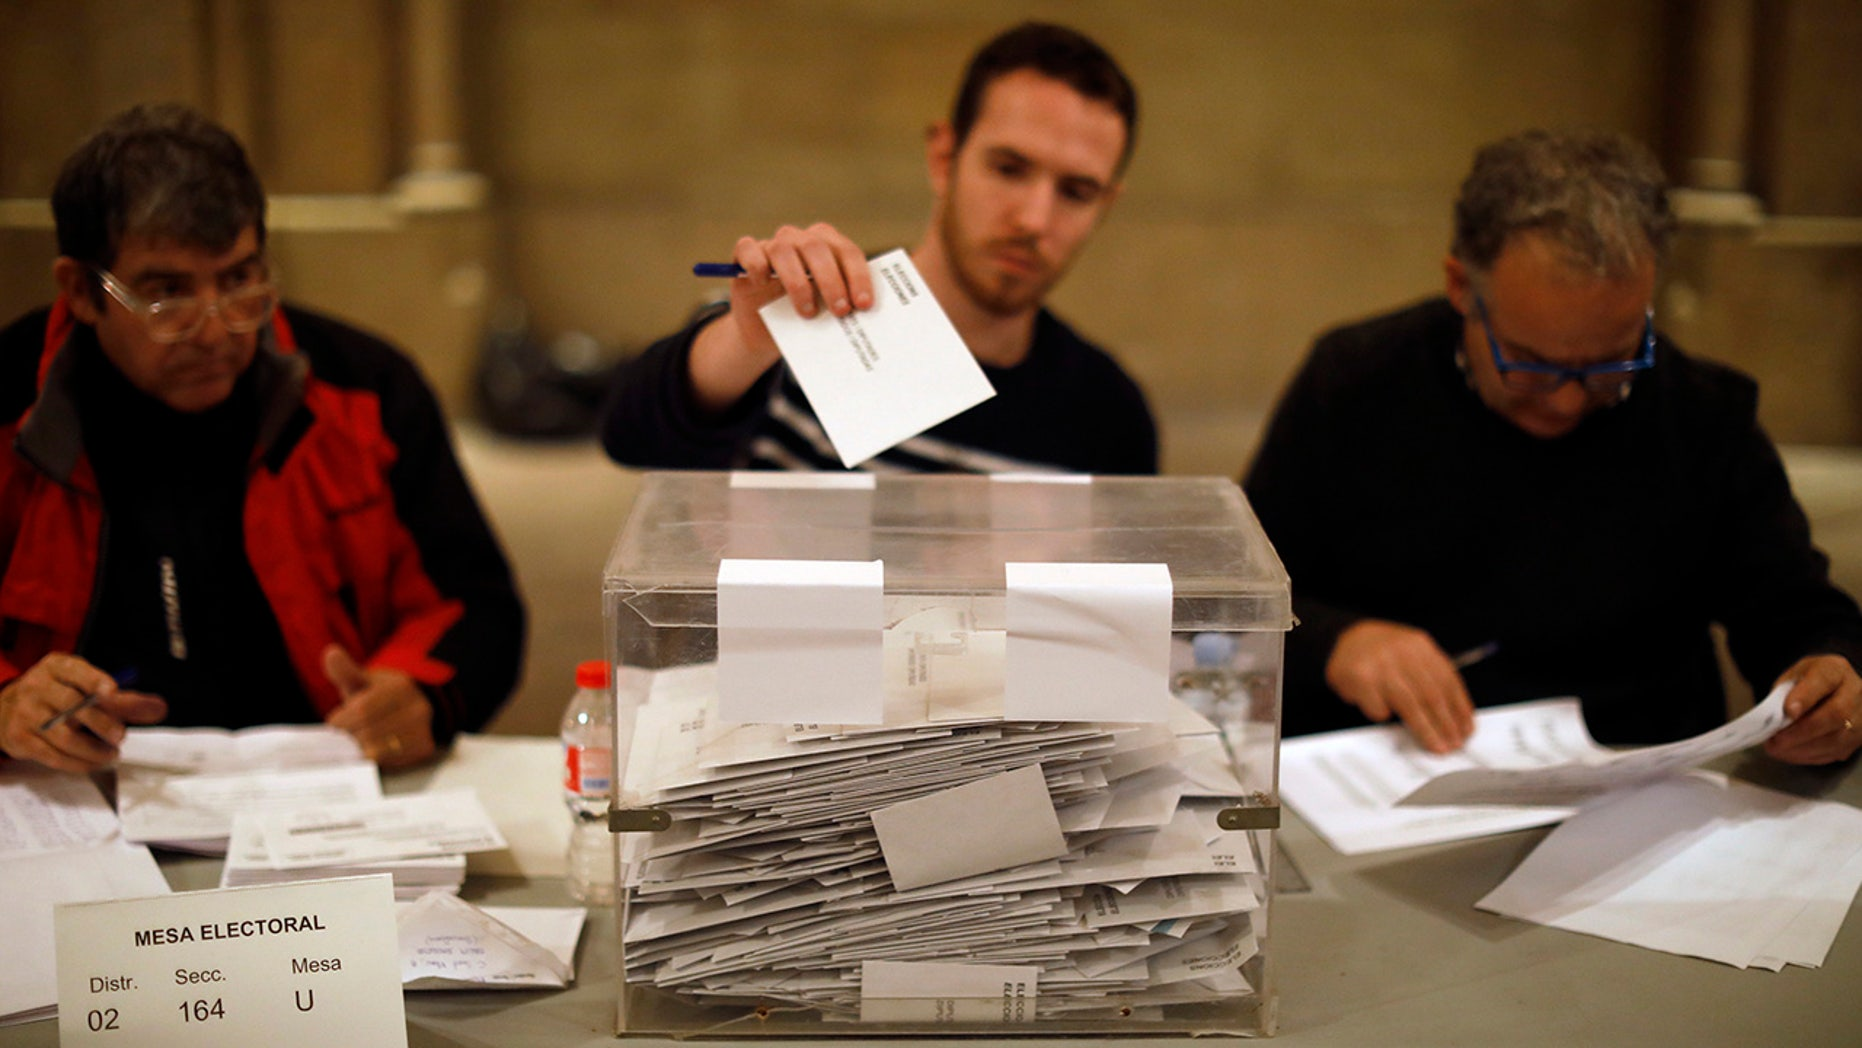 As polls close, election workers cast their own ballots for the Catalan regional election in a polling station at the Barcelona University in Barcelona, Spain, on Thursday, Dec. 21, 2017.